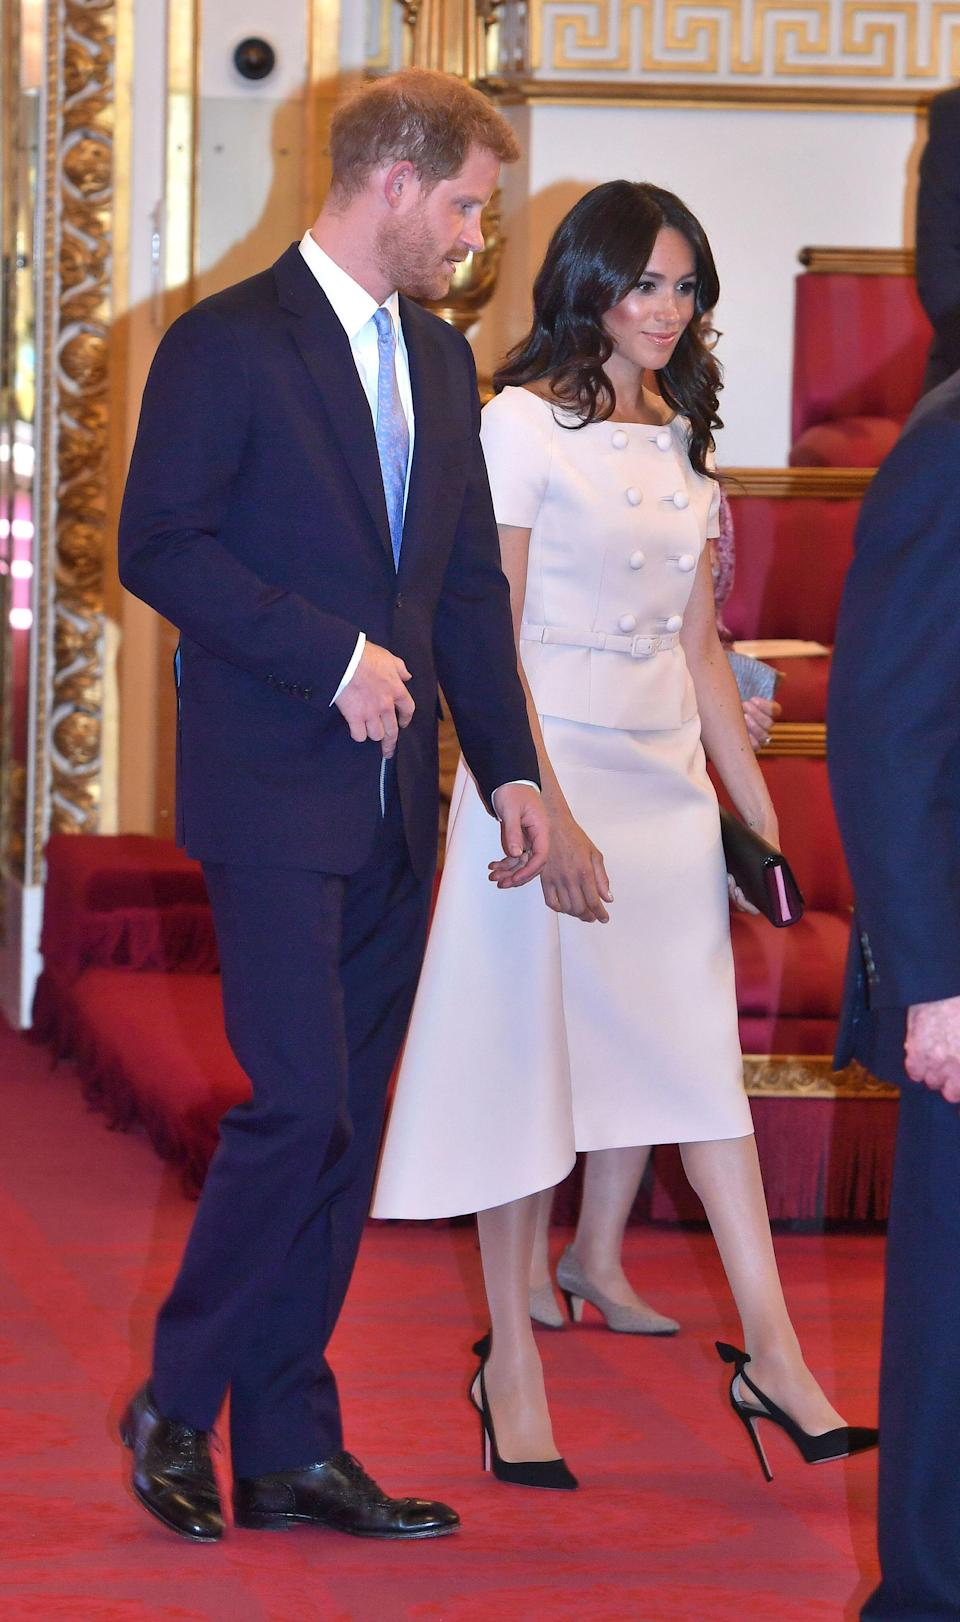 <p>The Duchess of Sussex opted for a blush pink skirt suit by Prada for her debut Queen's Young Leaders awards. For the Buckingham Palace-based event, Meghan Markle accessorised the look with Aquazurra heels and a co-ordinating Prada clutch. <em>[Photo: Getty]</em> </p>